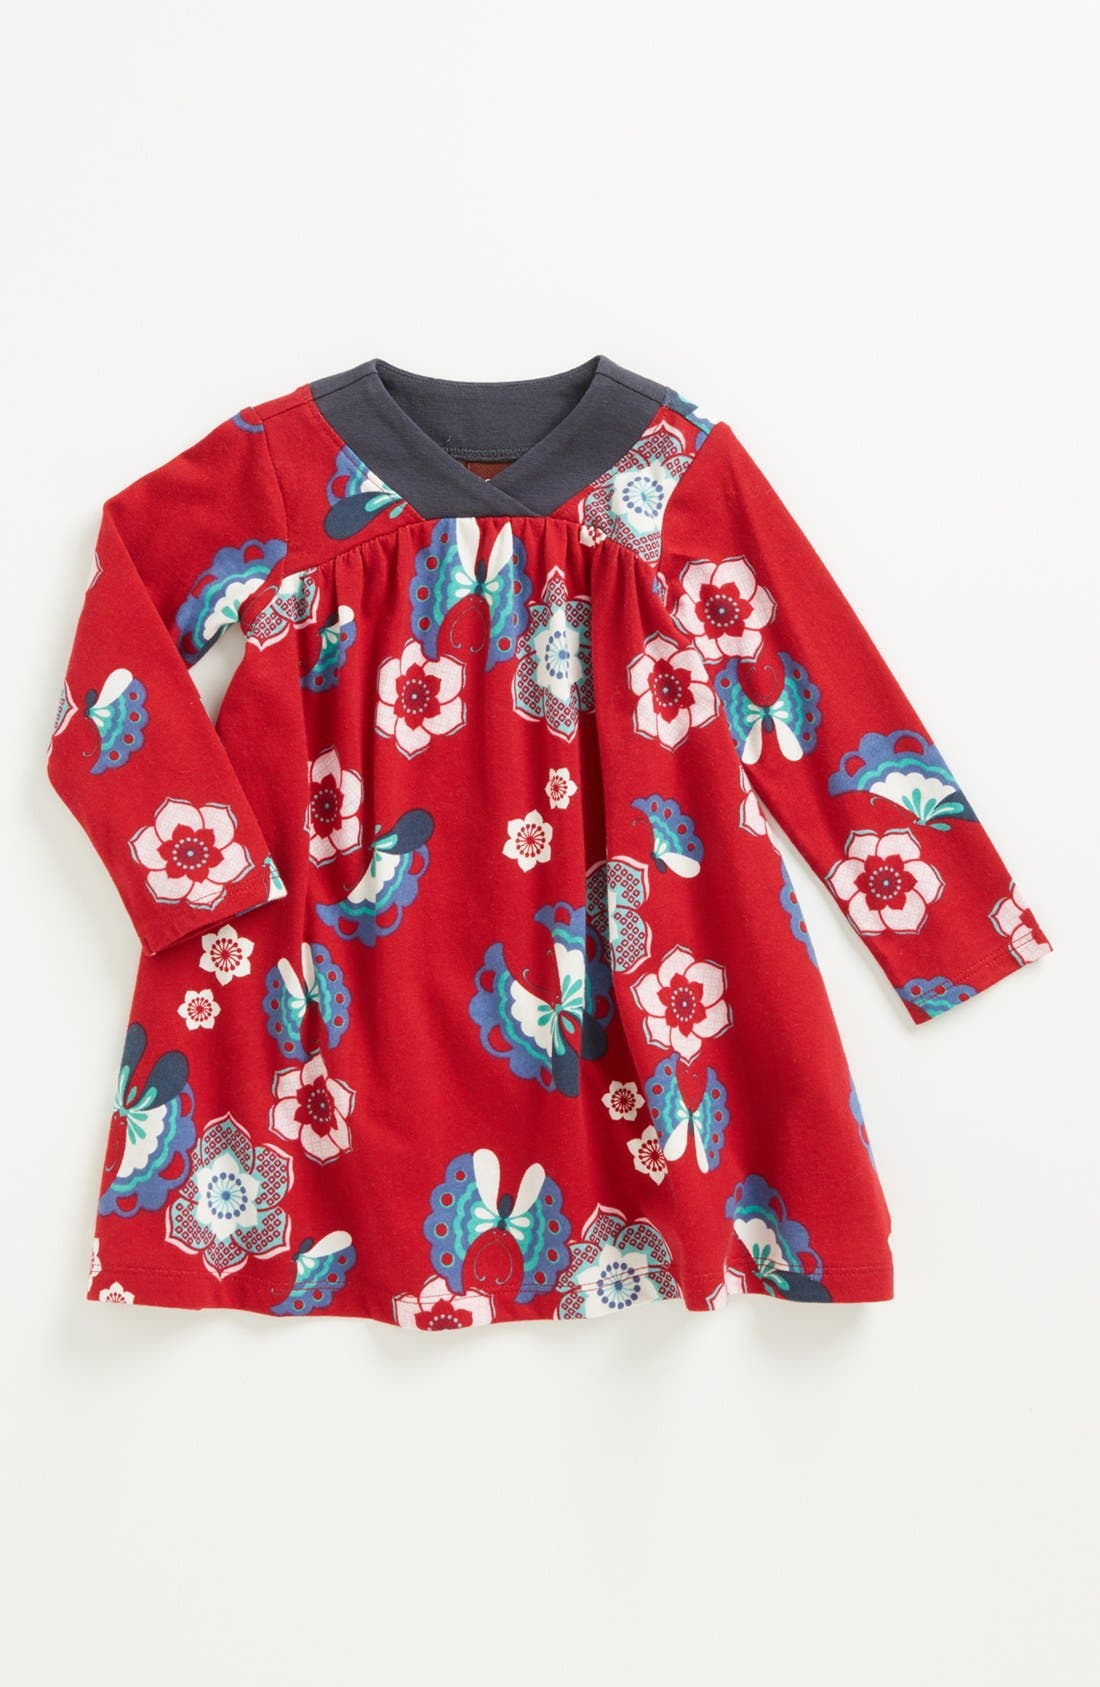 Main Image - Tea Collection 'Twirly' Print Dress (Baby Girls)